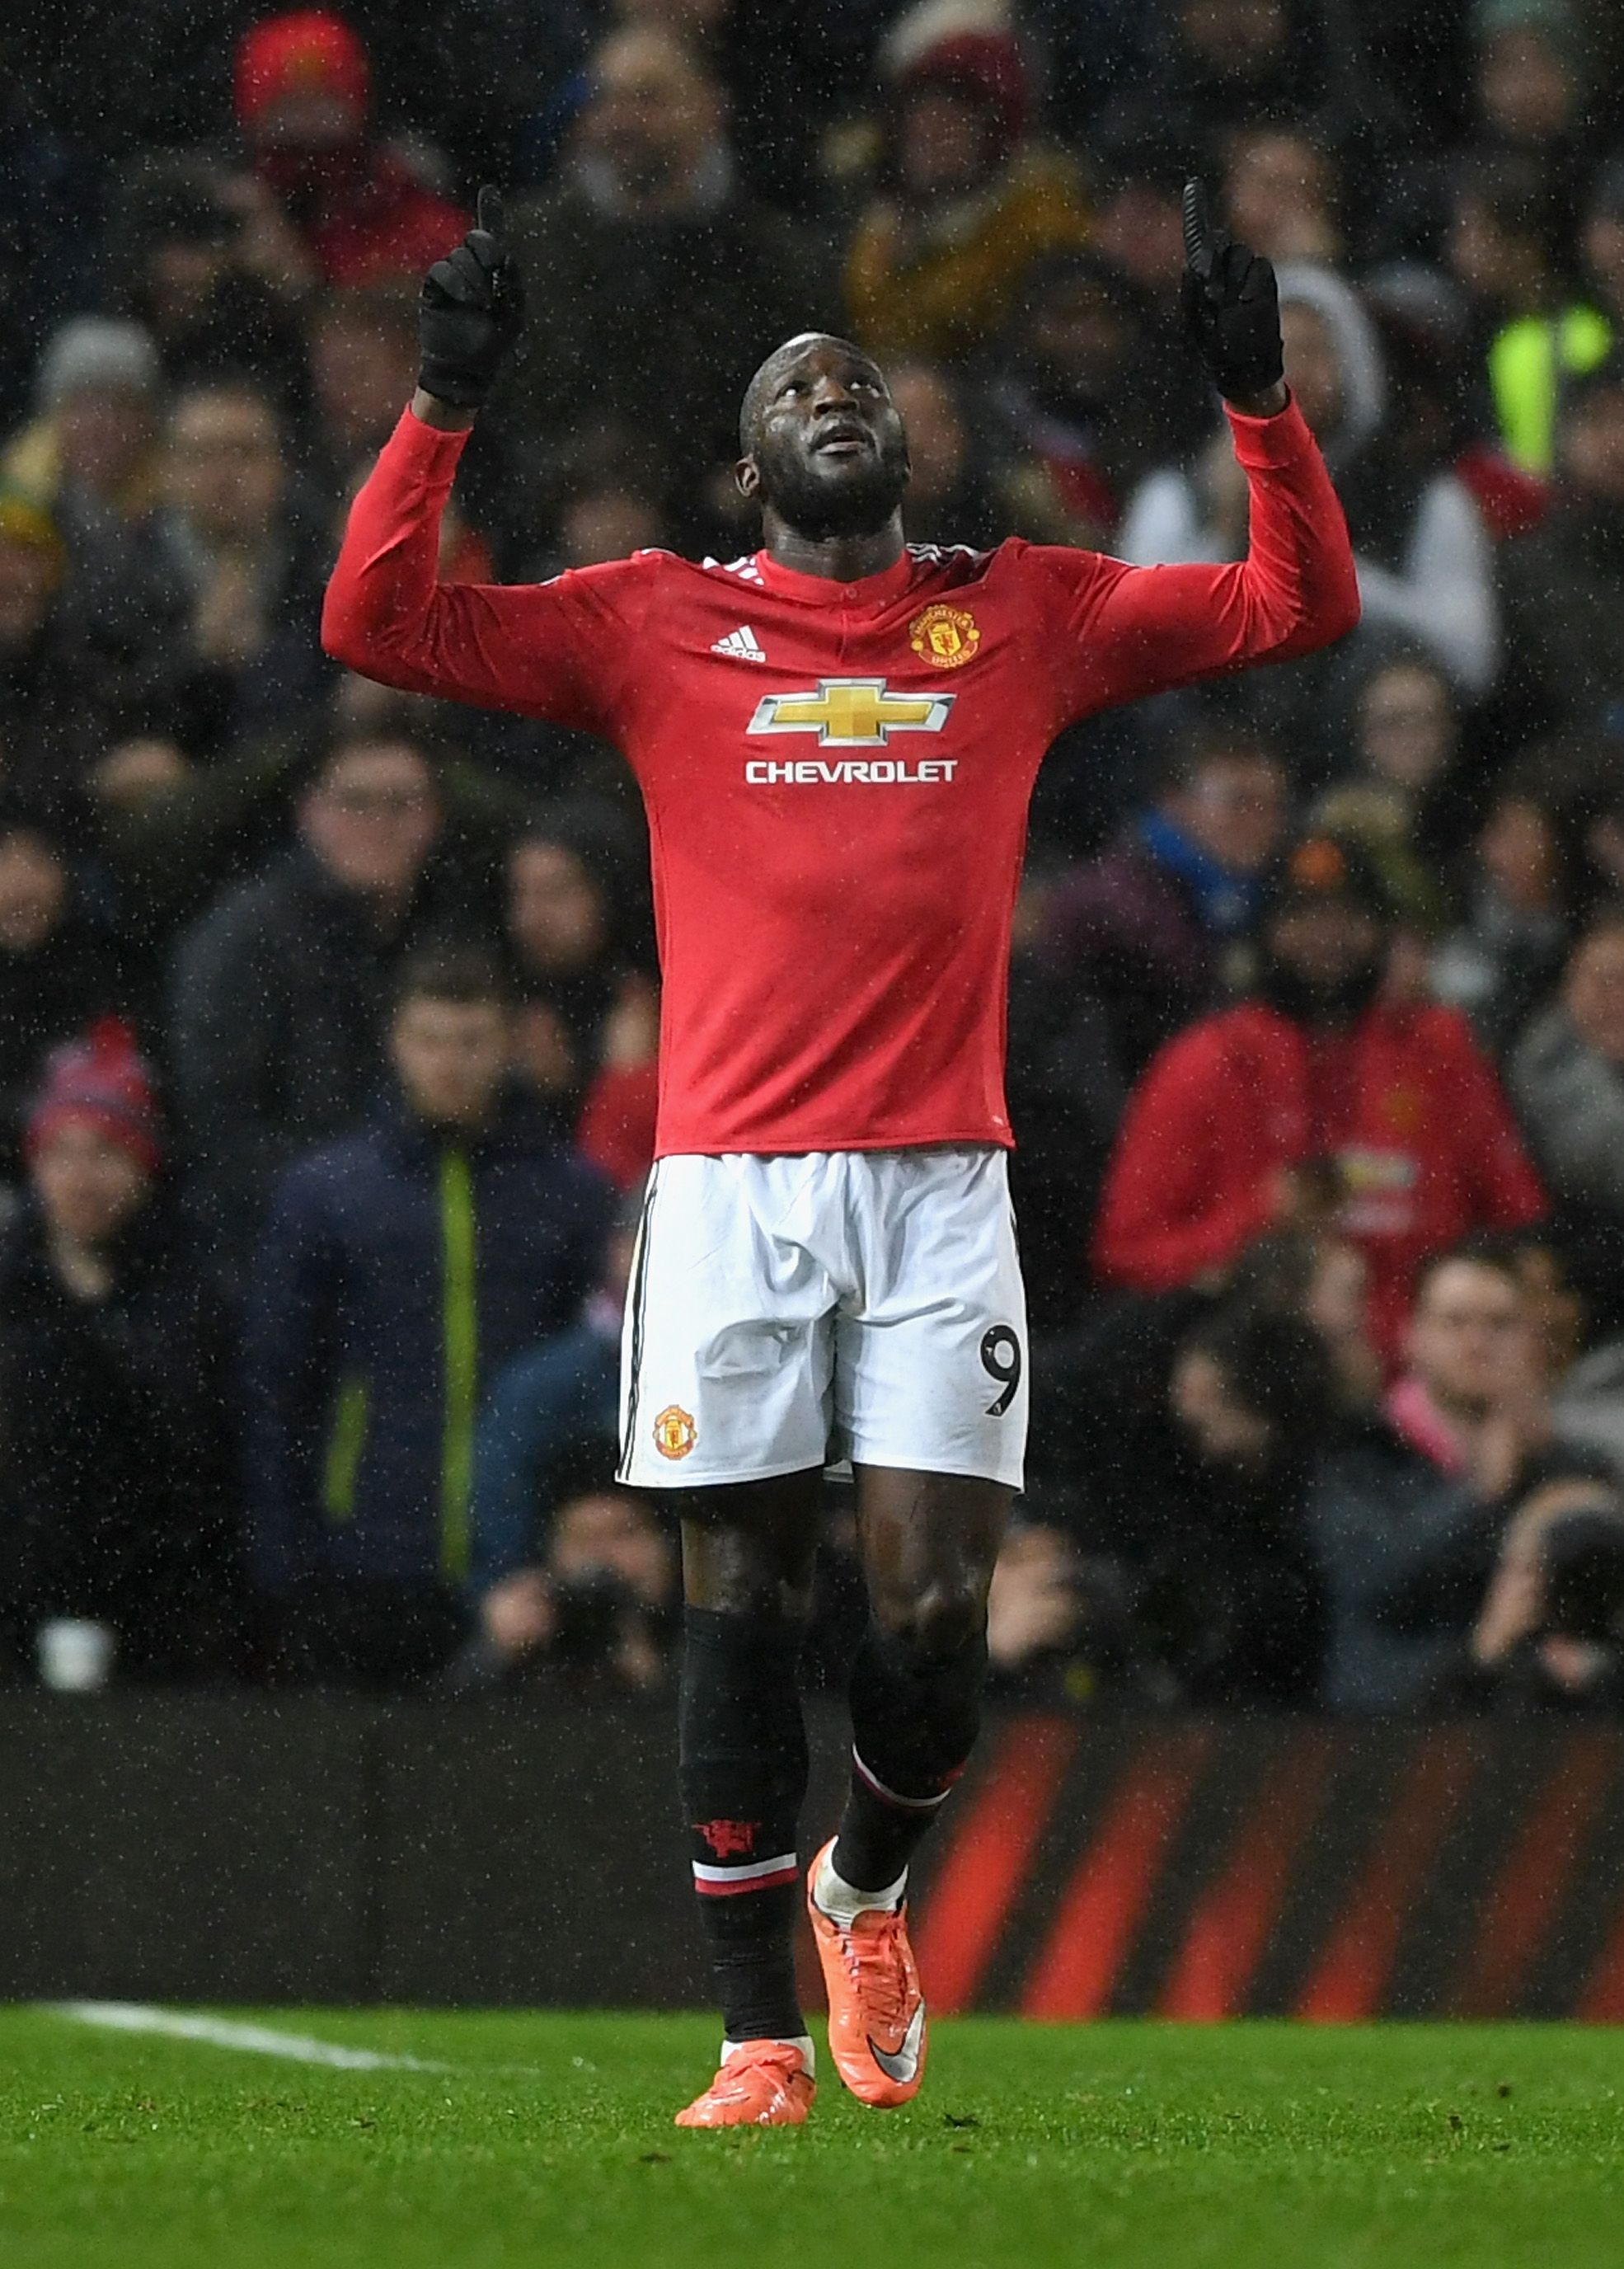 How Many More Goals Will Romelu Lukaku Score Official Manchester United Webs Manchester United Football Club Manchester United Football Good Soccer Players